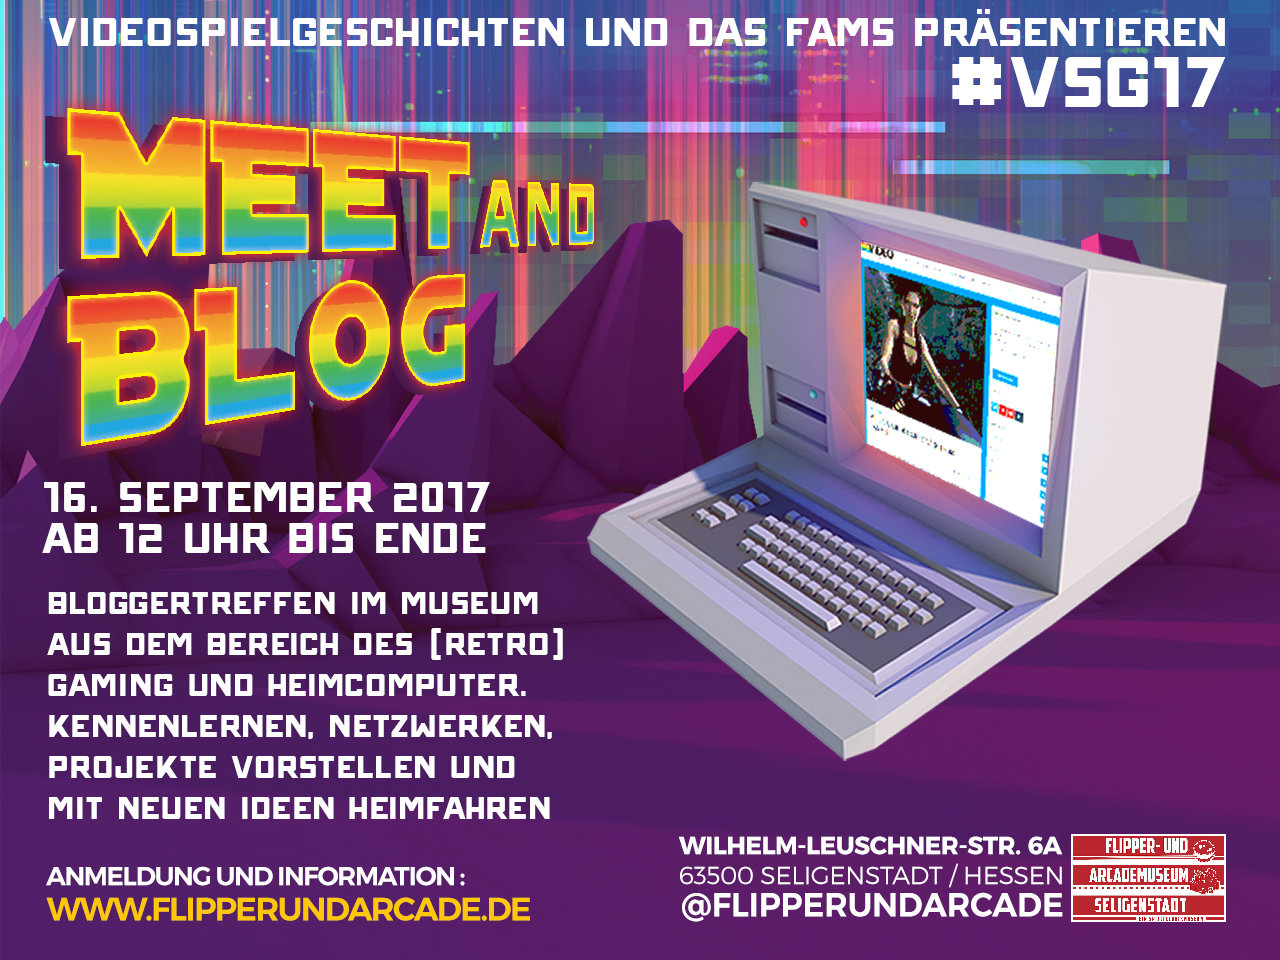 MEET AND BLOG am 16. September 2017 im FAMS (Bild: Senad Palic)